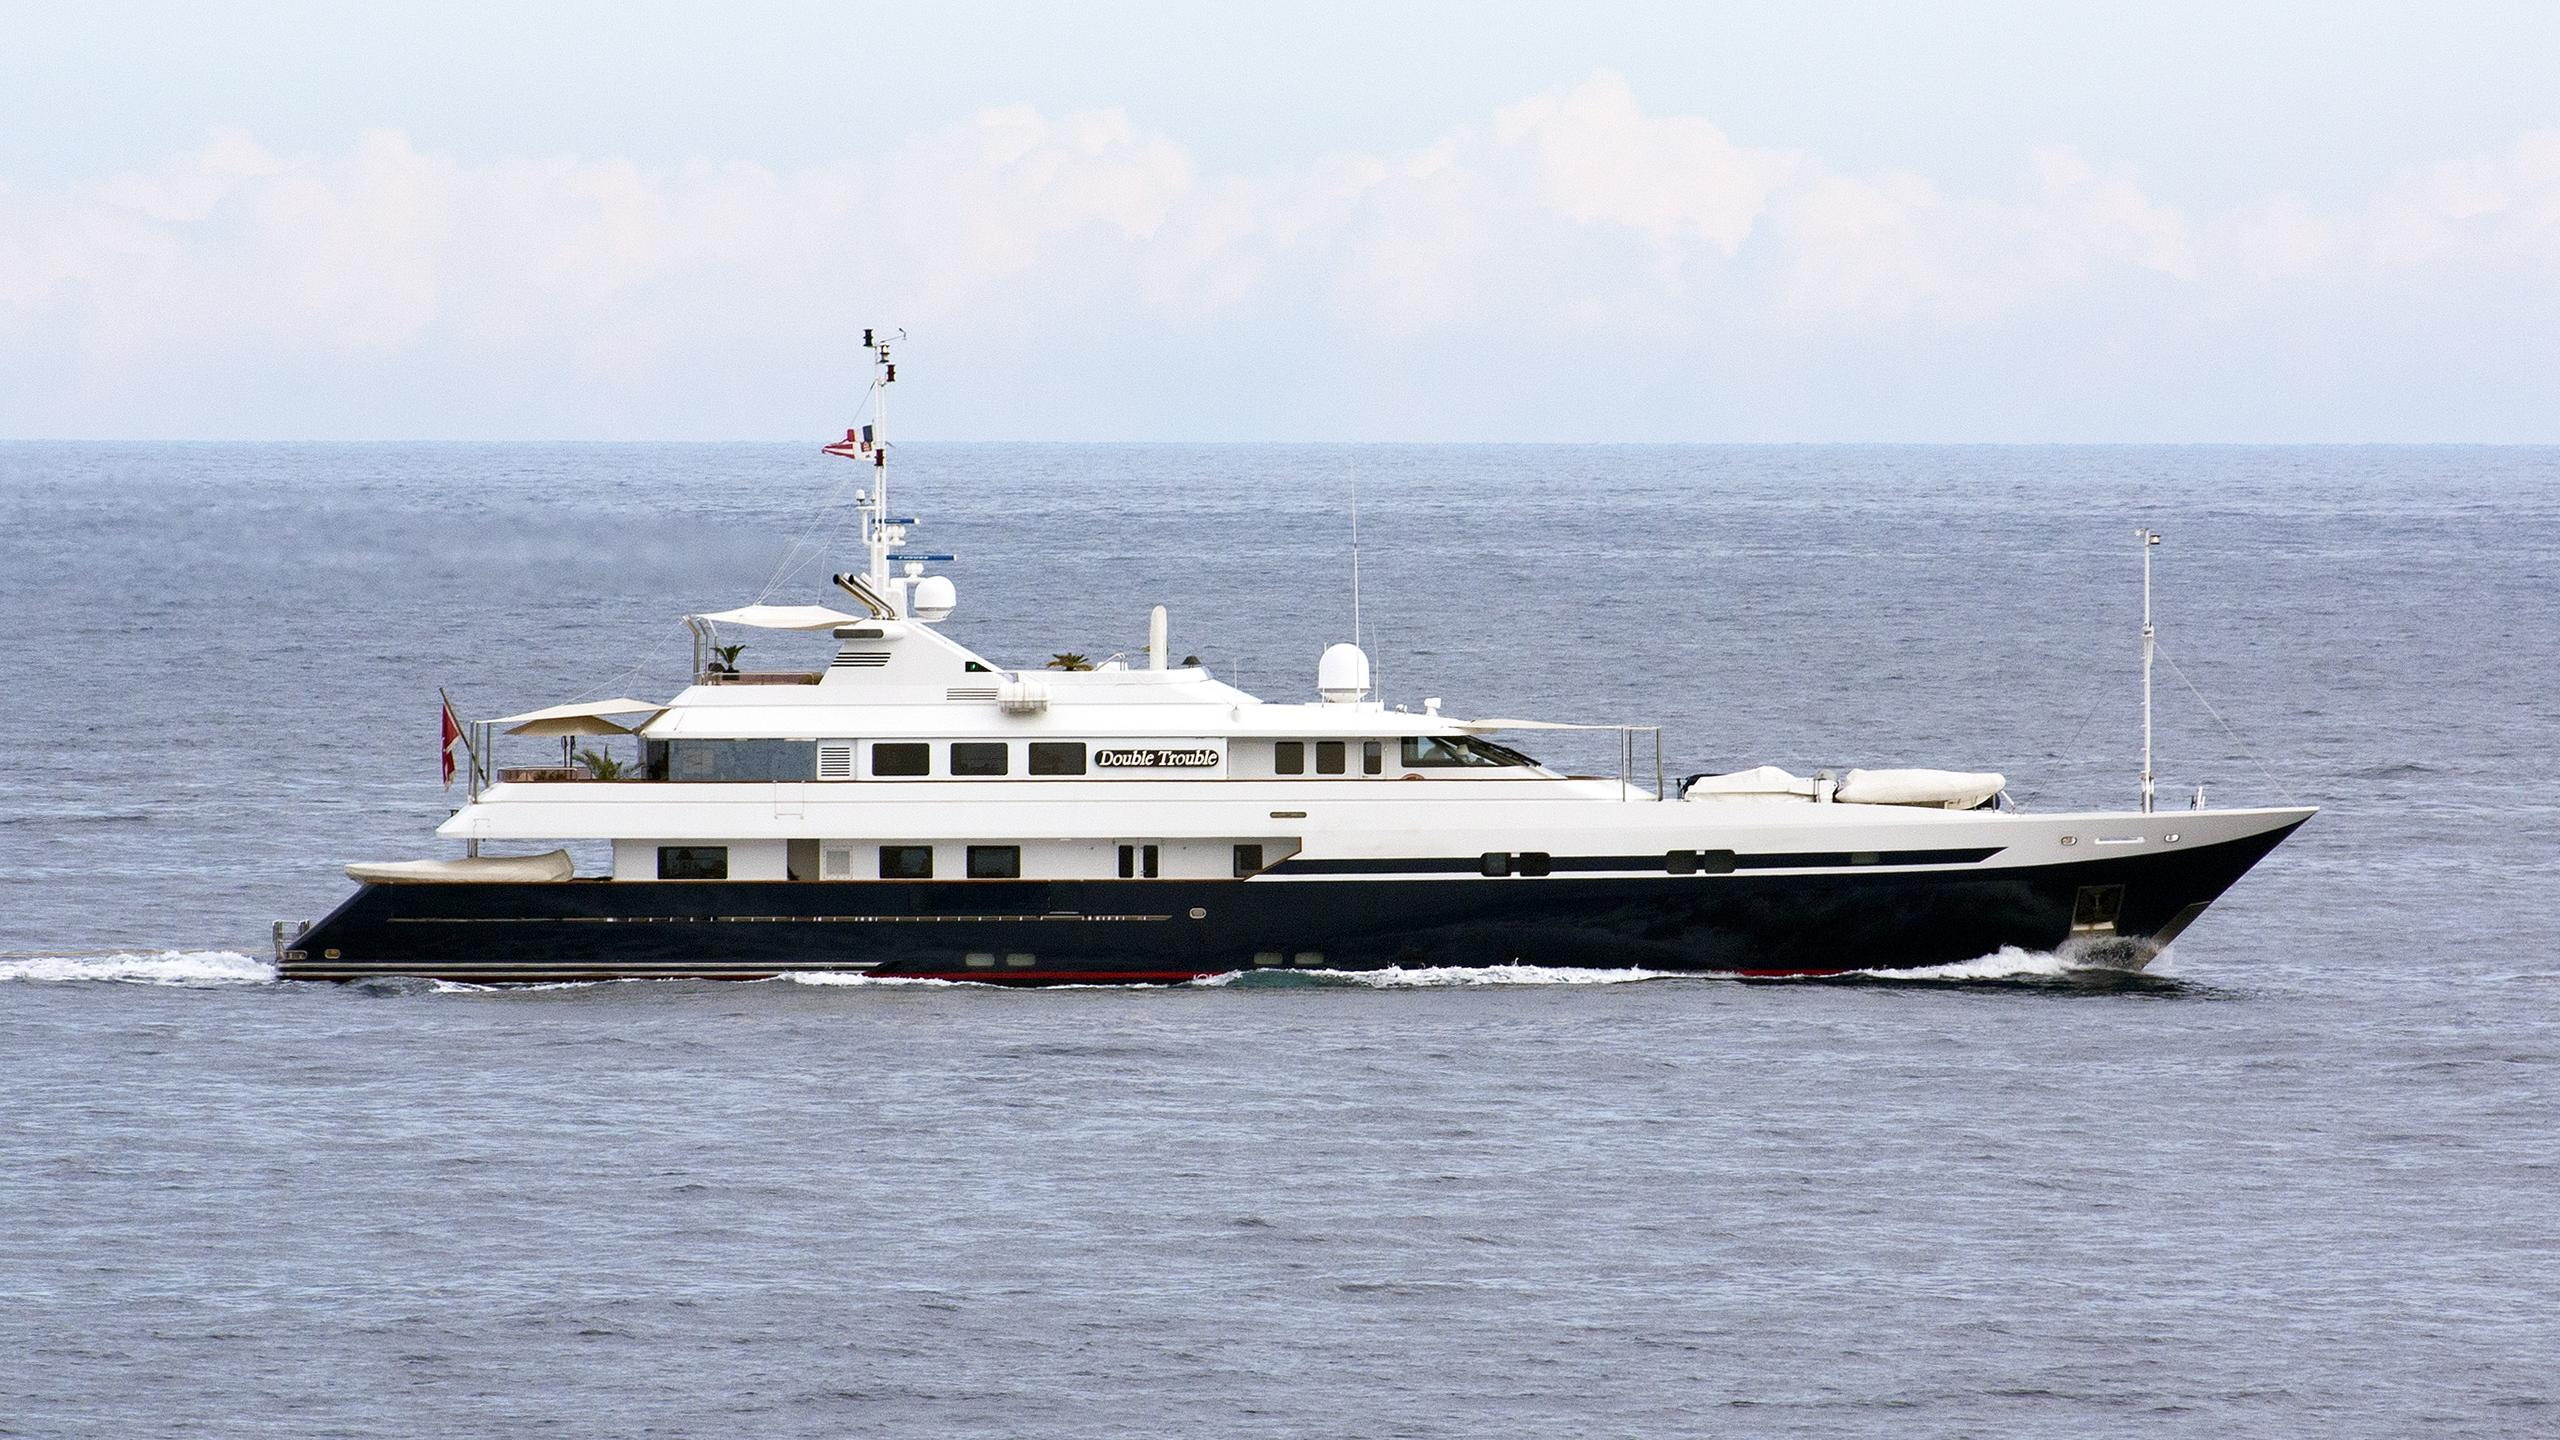 double-trouble-motor-yacht-turquoise-1994-50m-profile-after-refit